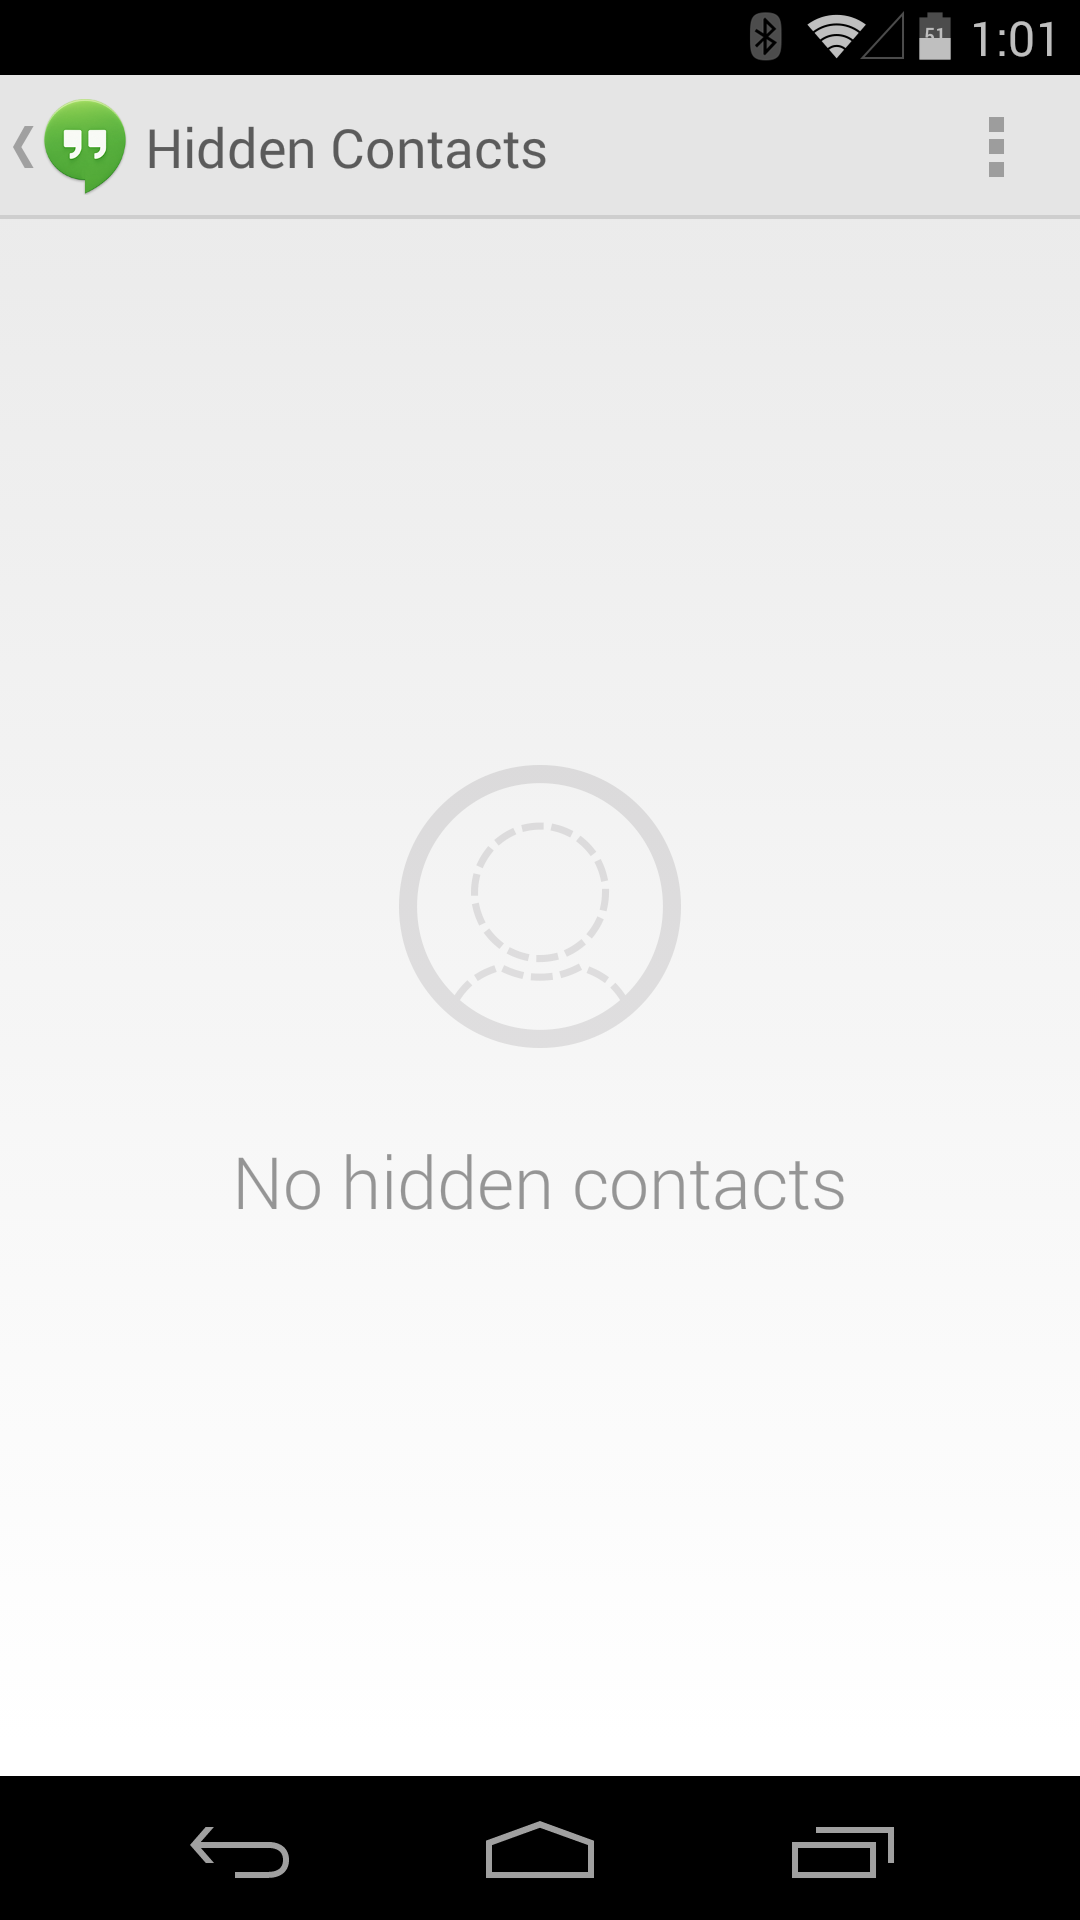 How to find hidden contacts on hangouts